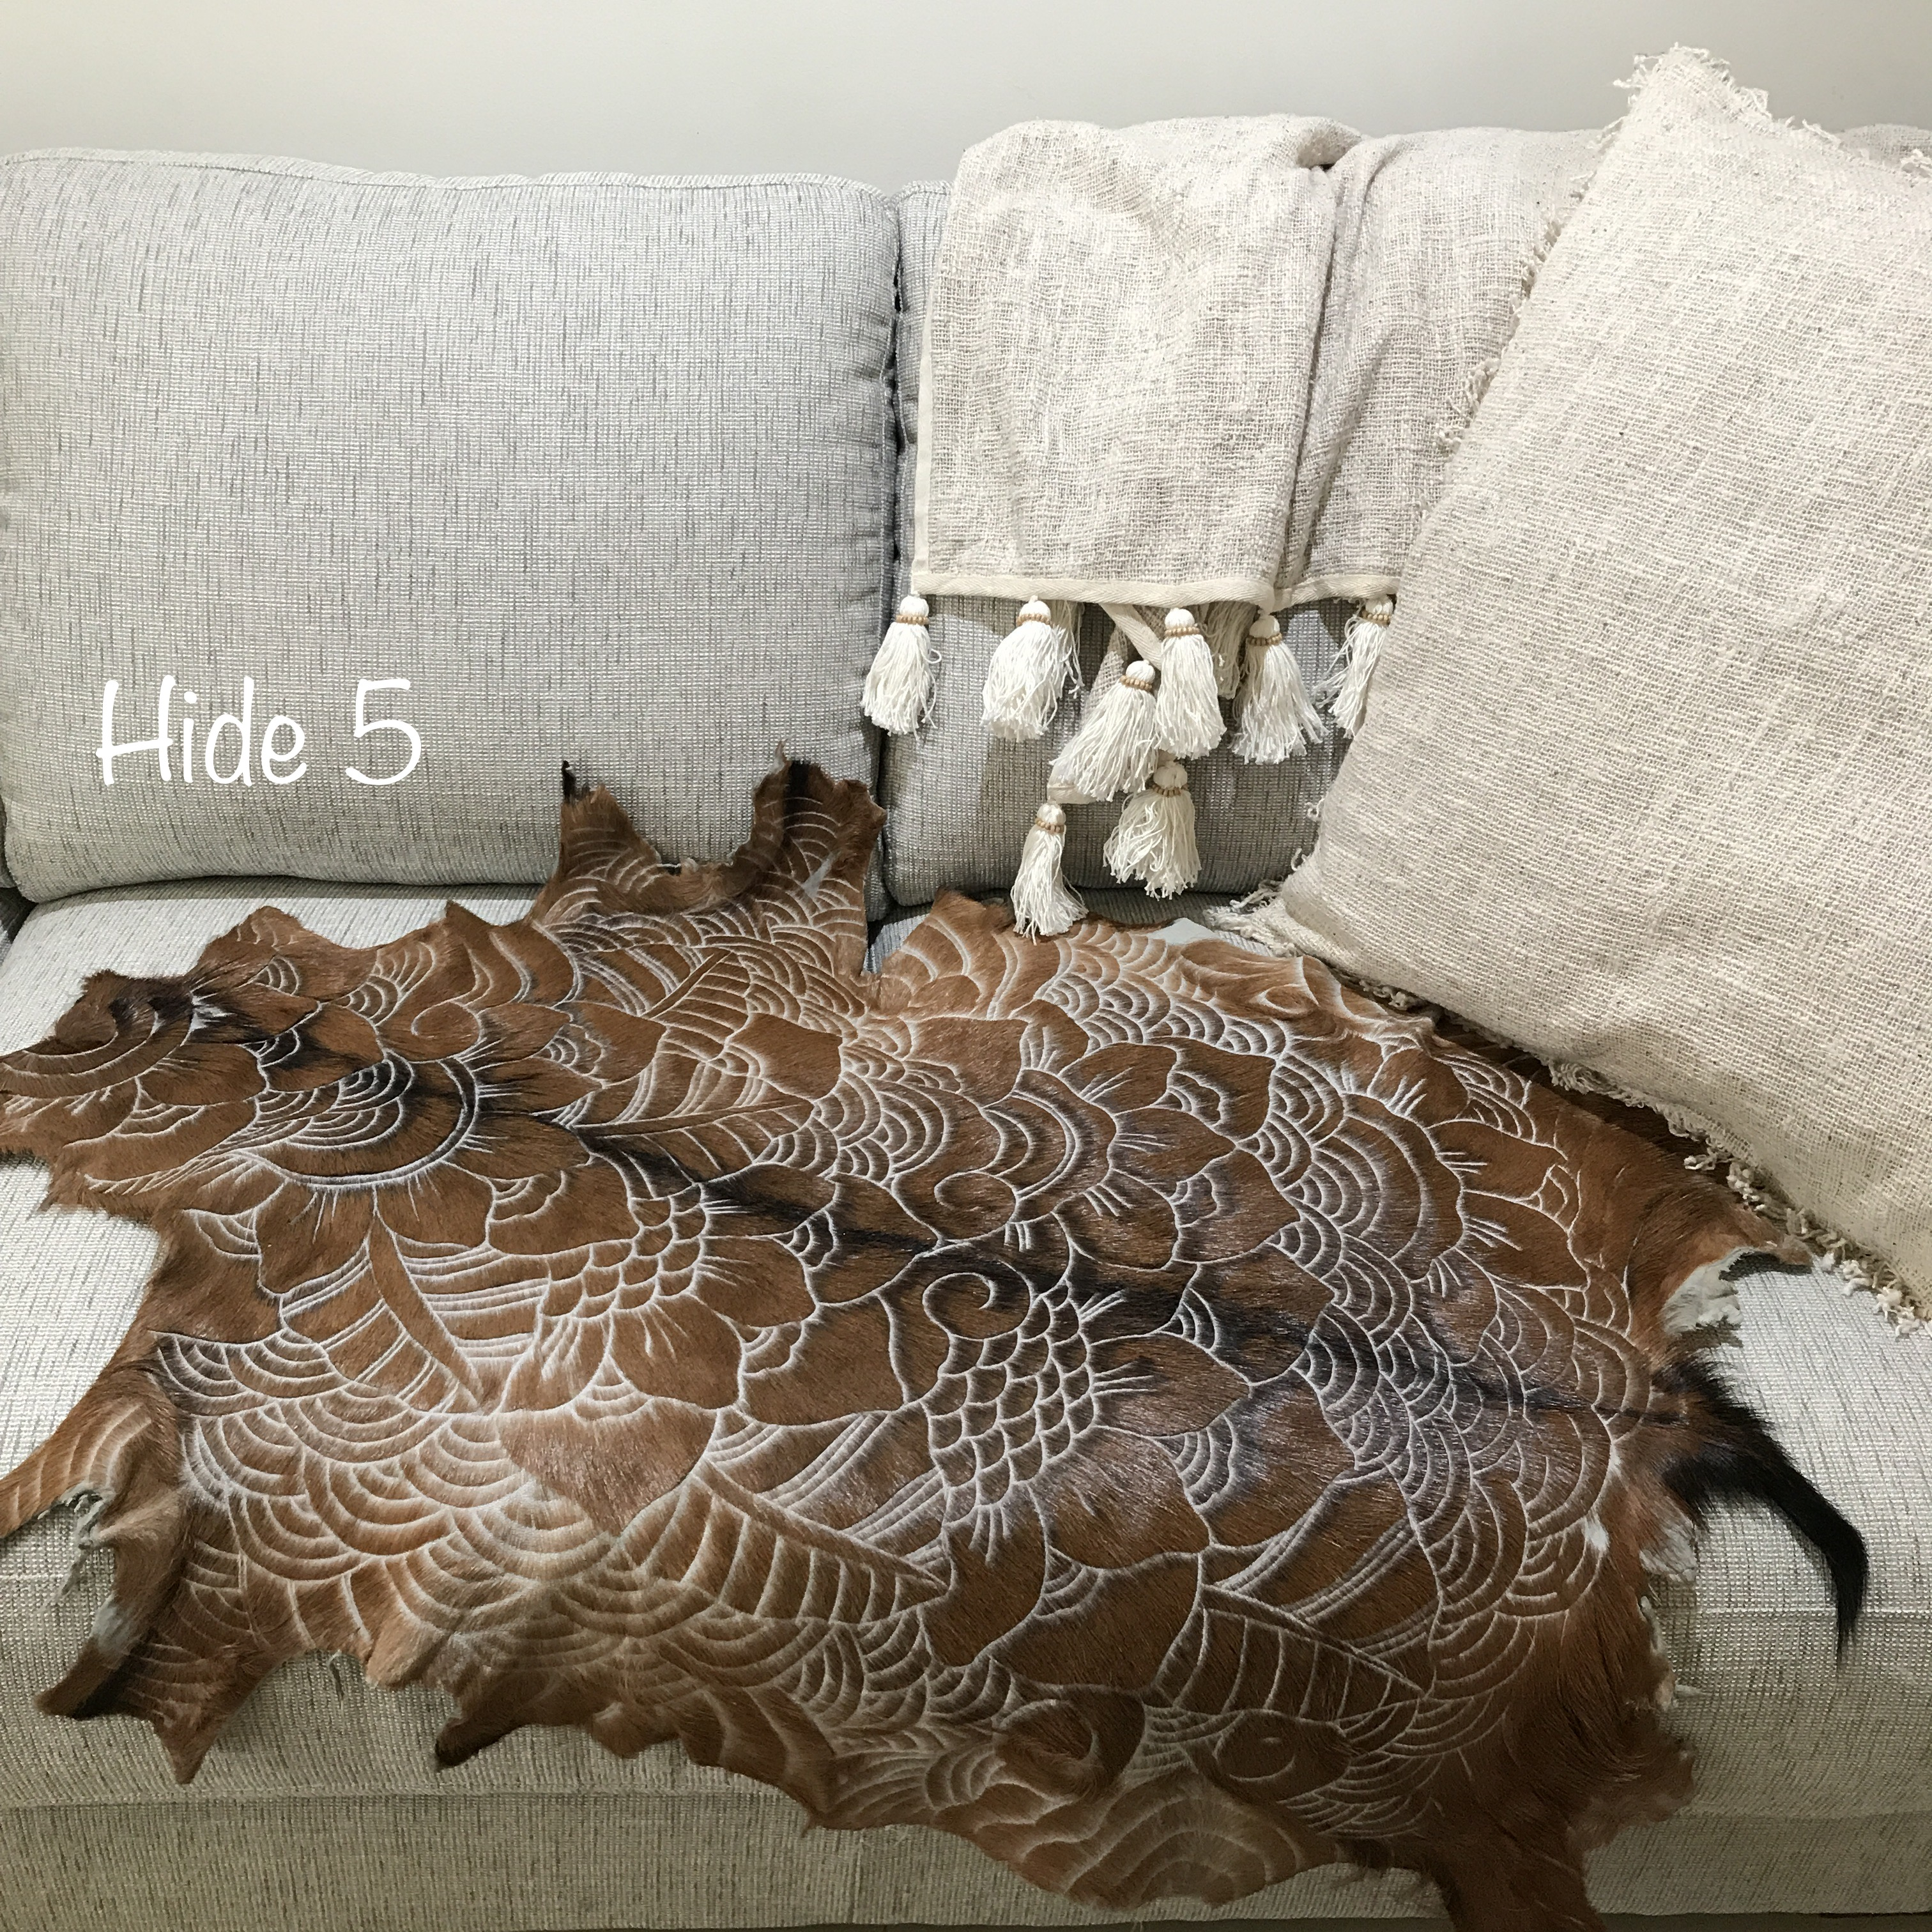 white bison brown rugs cowhide skin rug index a ft products and hide x